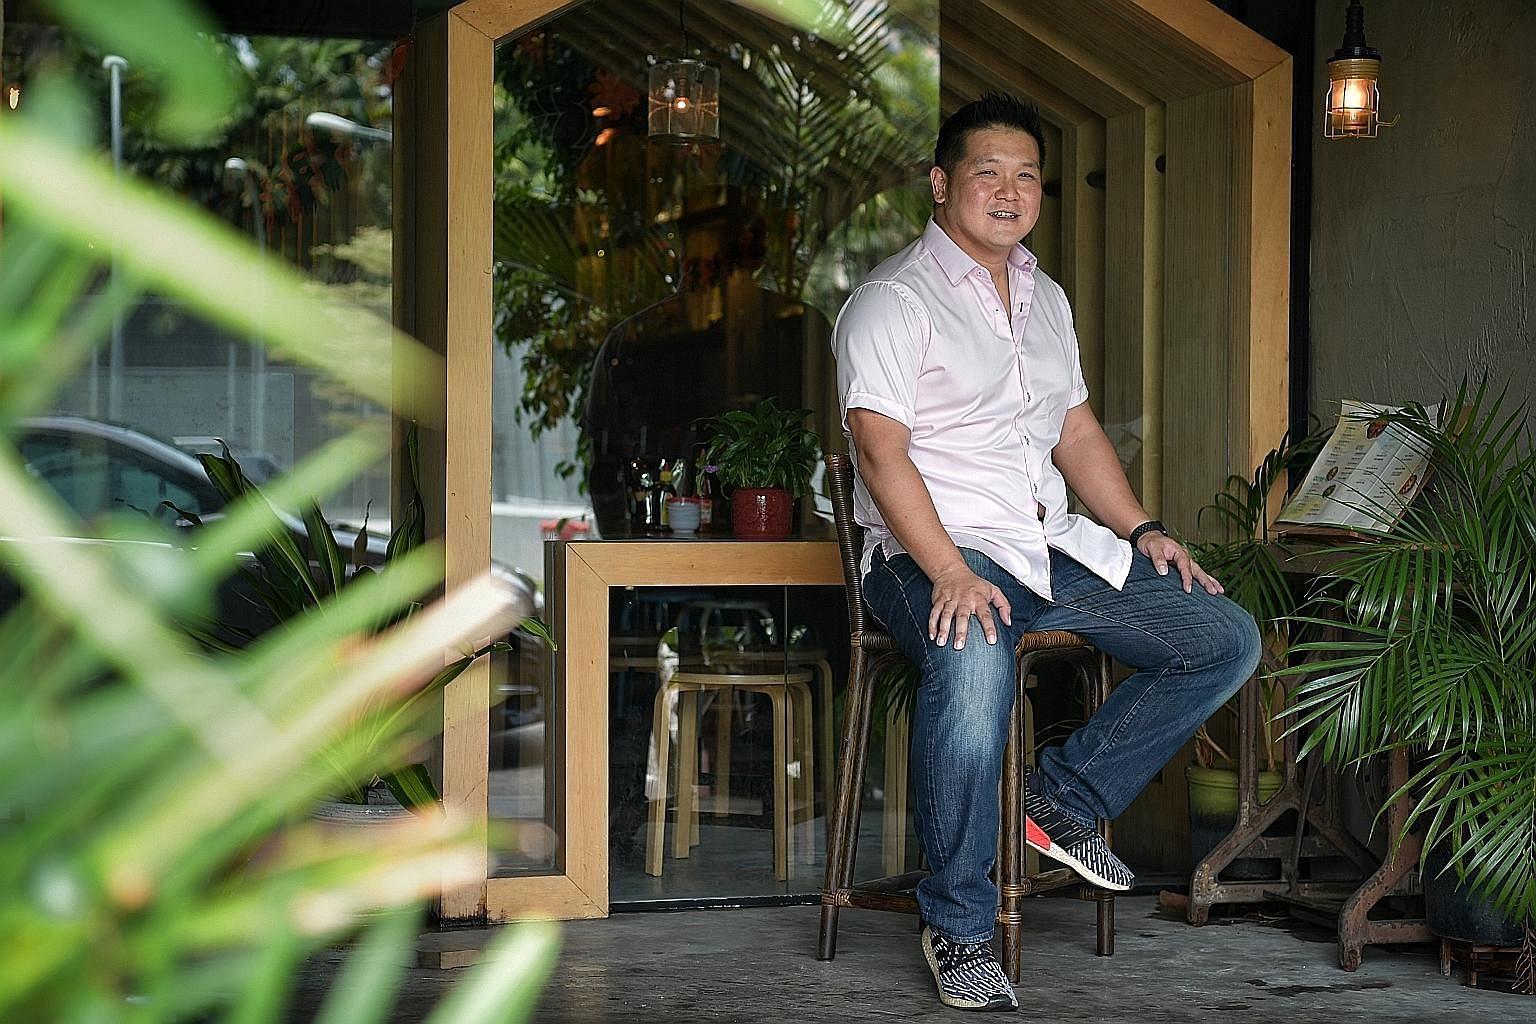 Besides the Vietnamese eatery Mrs Pho, which has expanded to three outlets, Mr Darien Tan also runs an oil-trading company and, last year, he started a third business - in recycling. The new business focuses on solutions that transform food waste, fa